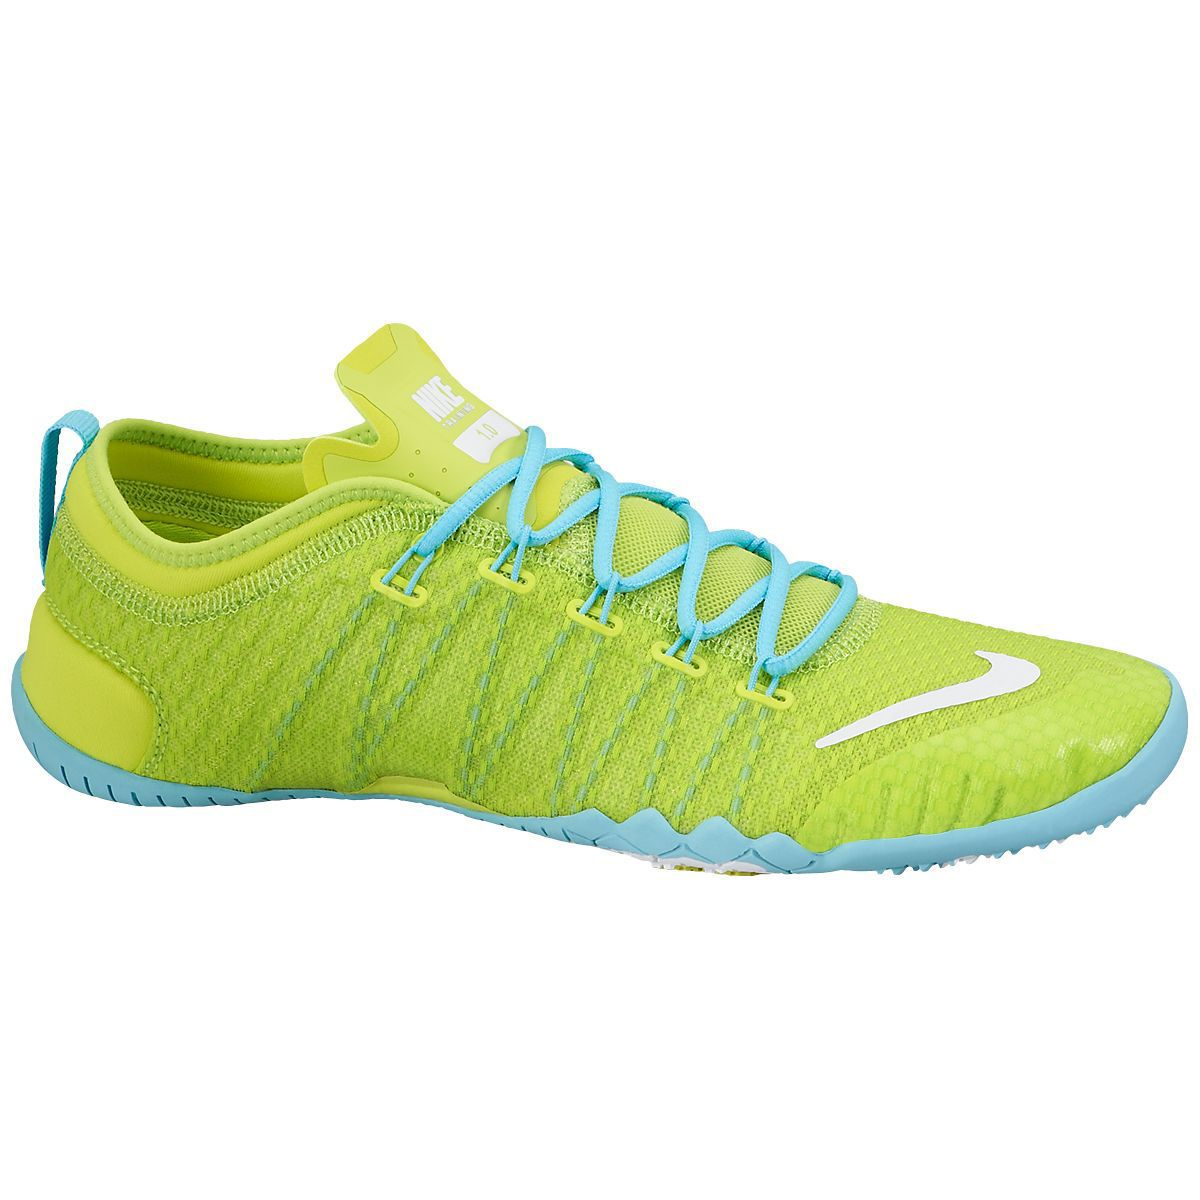 Nike Women's Free 1.0 Cross Complete Shoes - SU14 Training Running Shoes -  istylesport